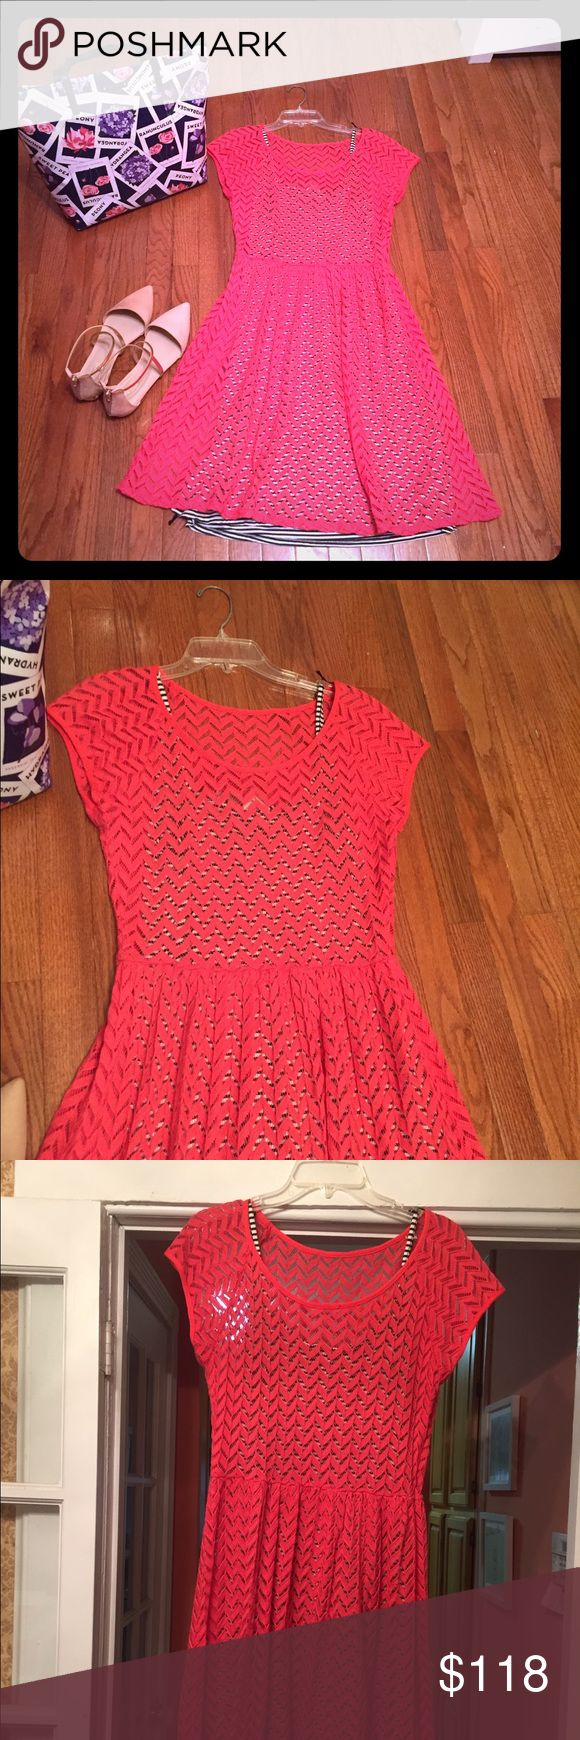 Anthropologie Weston Wear Pink Chevron Dress Bright pink Chevron patterned Lace fit and flare dress featuring cap sleeves, defined waist and slightly flared skirt. Scoop neckline for a feminine, flattering fit; black and white striped slipdress underneath. The black/white stripe peeks through the semi sheer Chevron pattern for a fun, whimsical look. A gorgeous dress (still with tags!); ideal for the summer with simple sandals or dress it up for a night out-like having 2 fabulous dresses in…